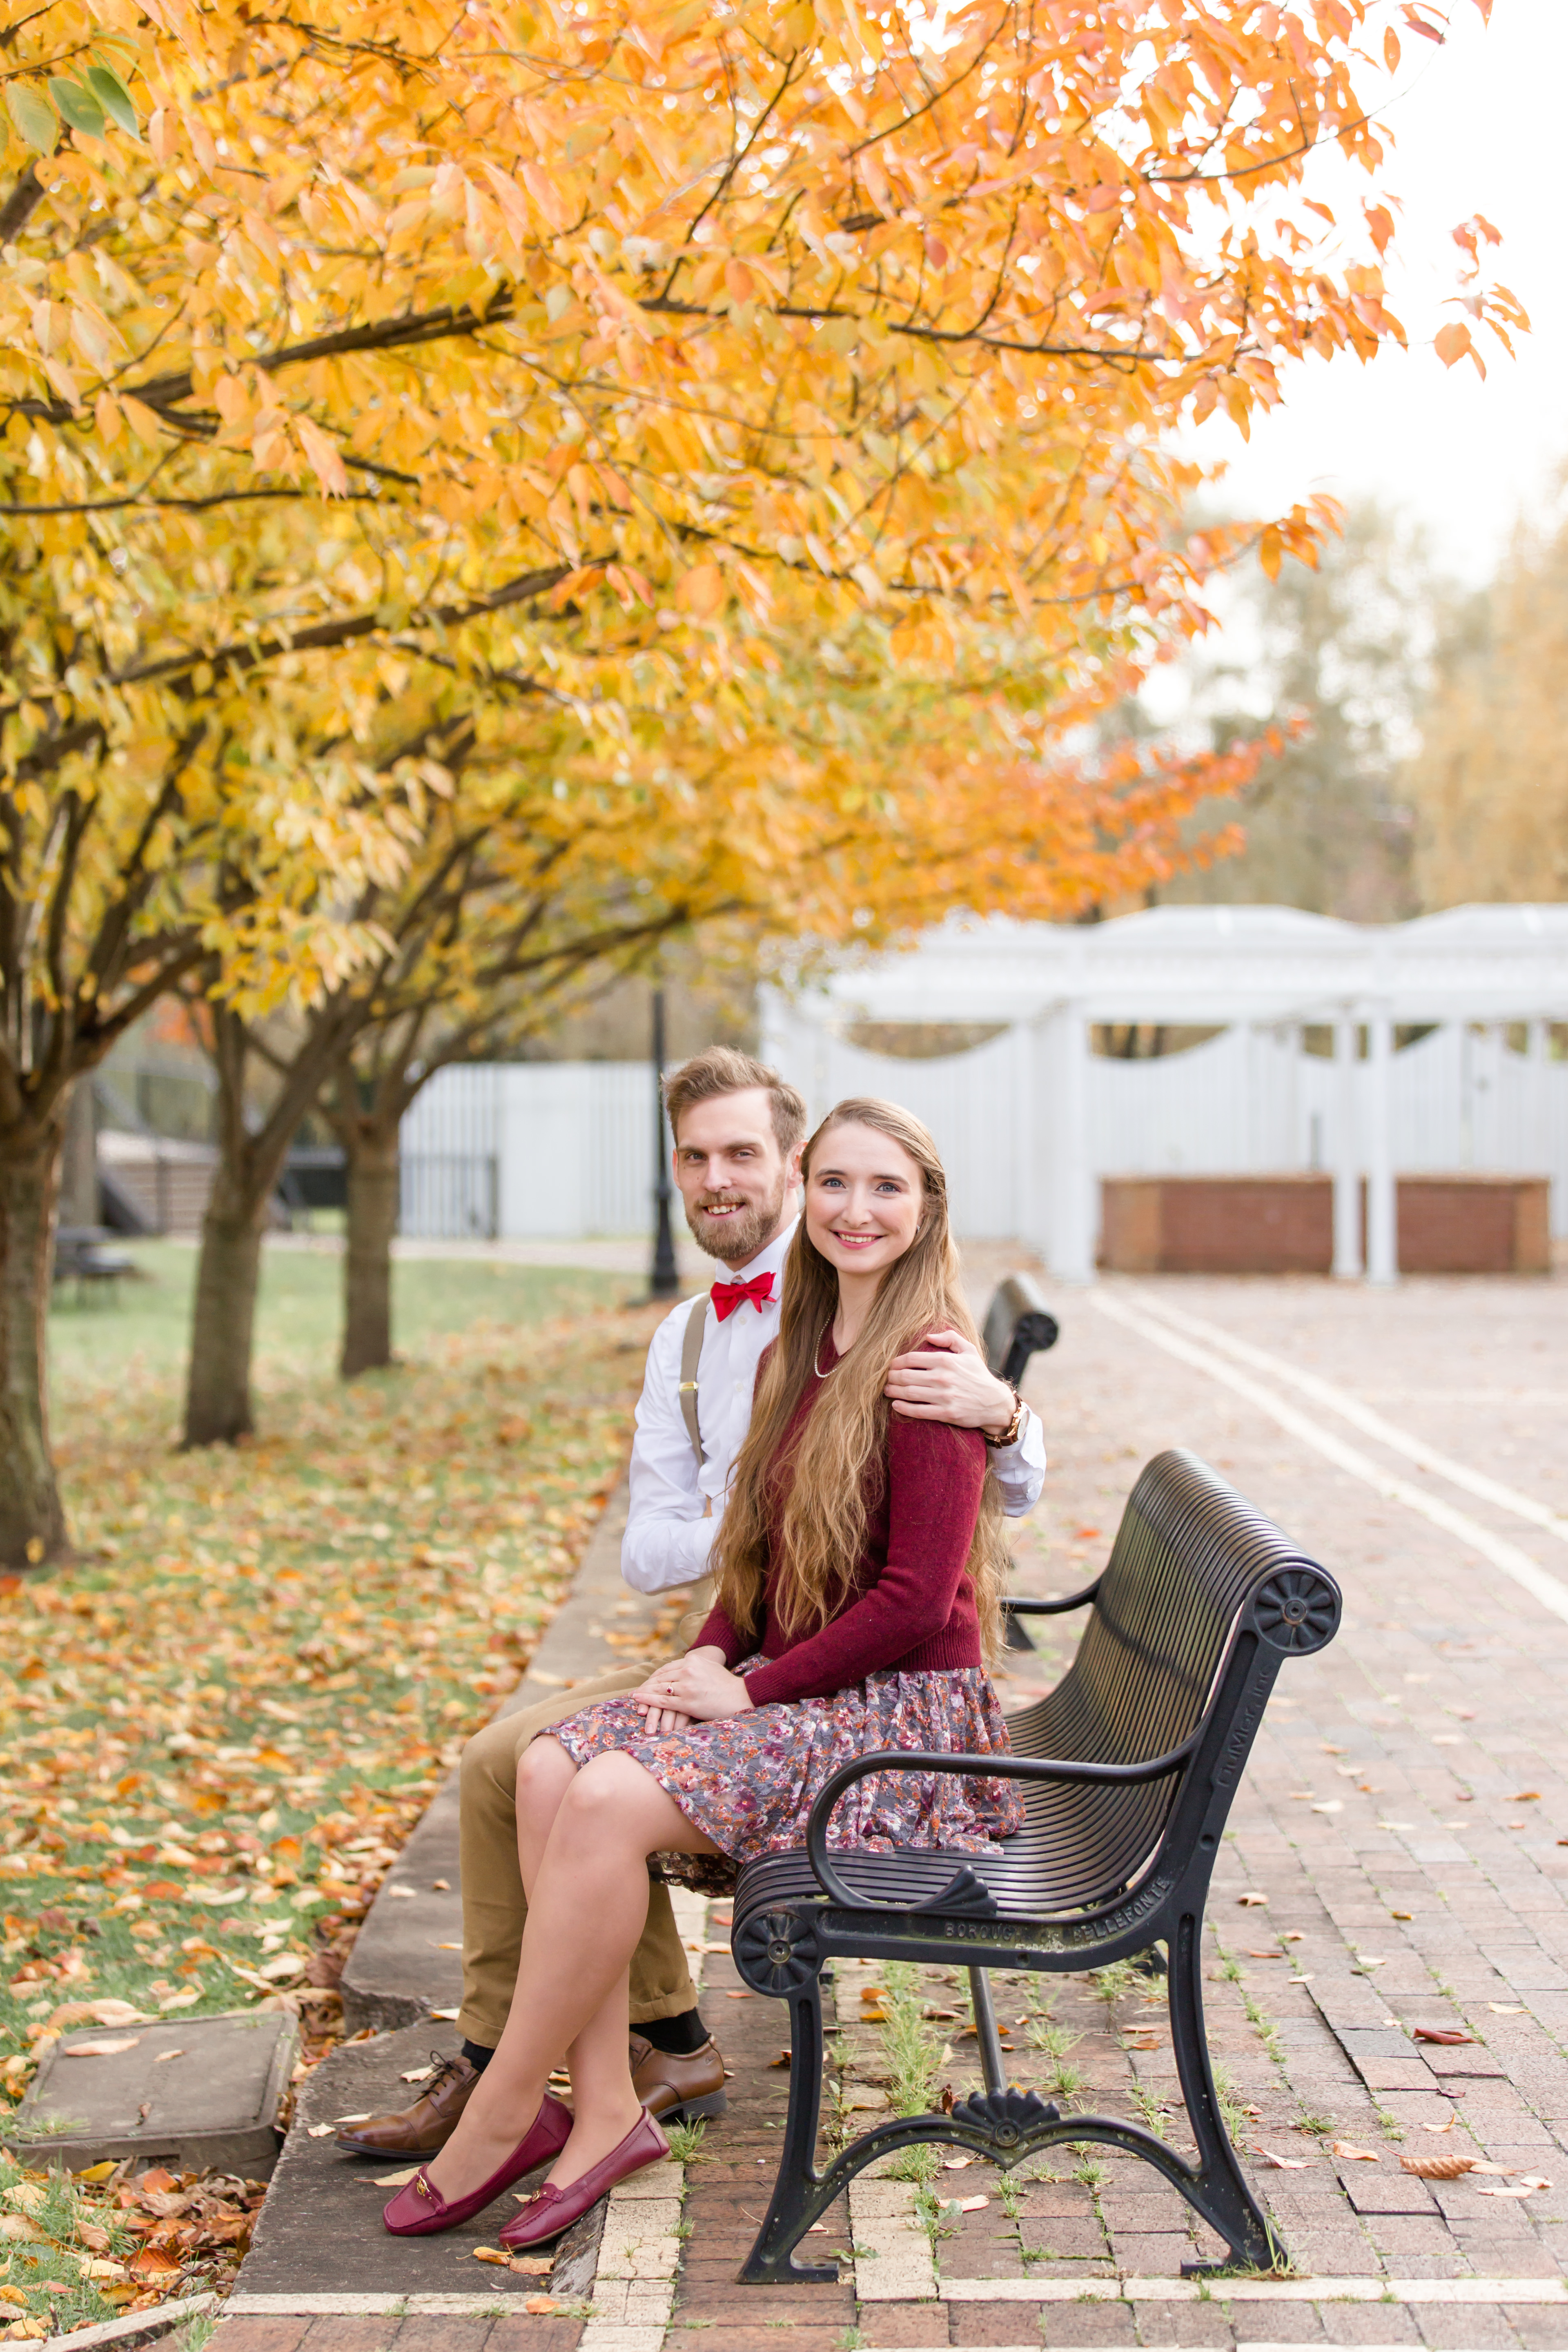 Fall engagement photos at Talleyrand Park in Victorian Bellefonte central Pennsylvania